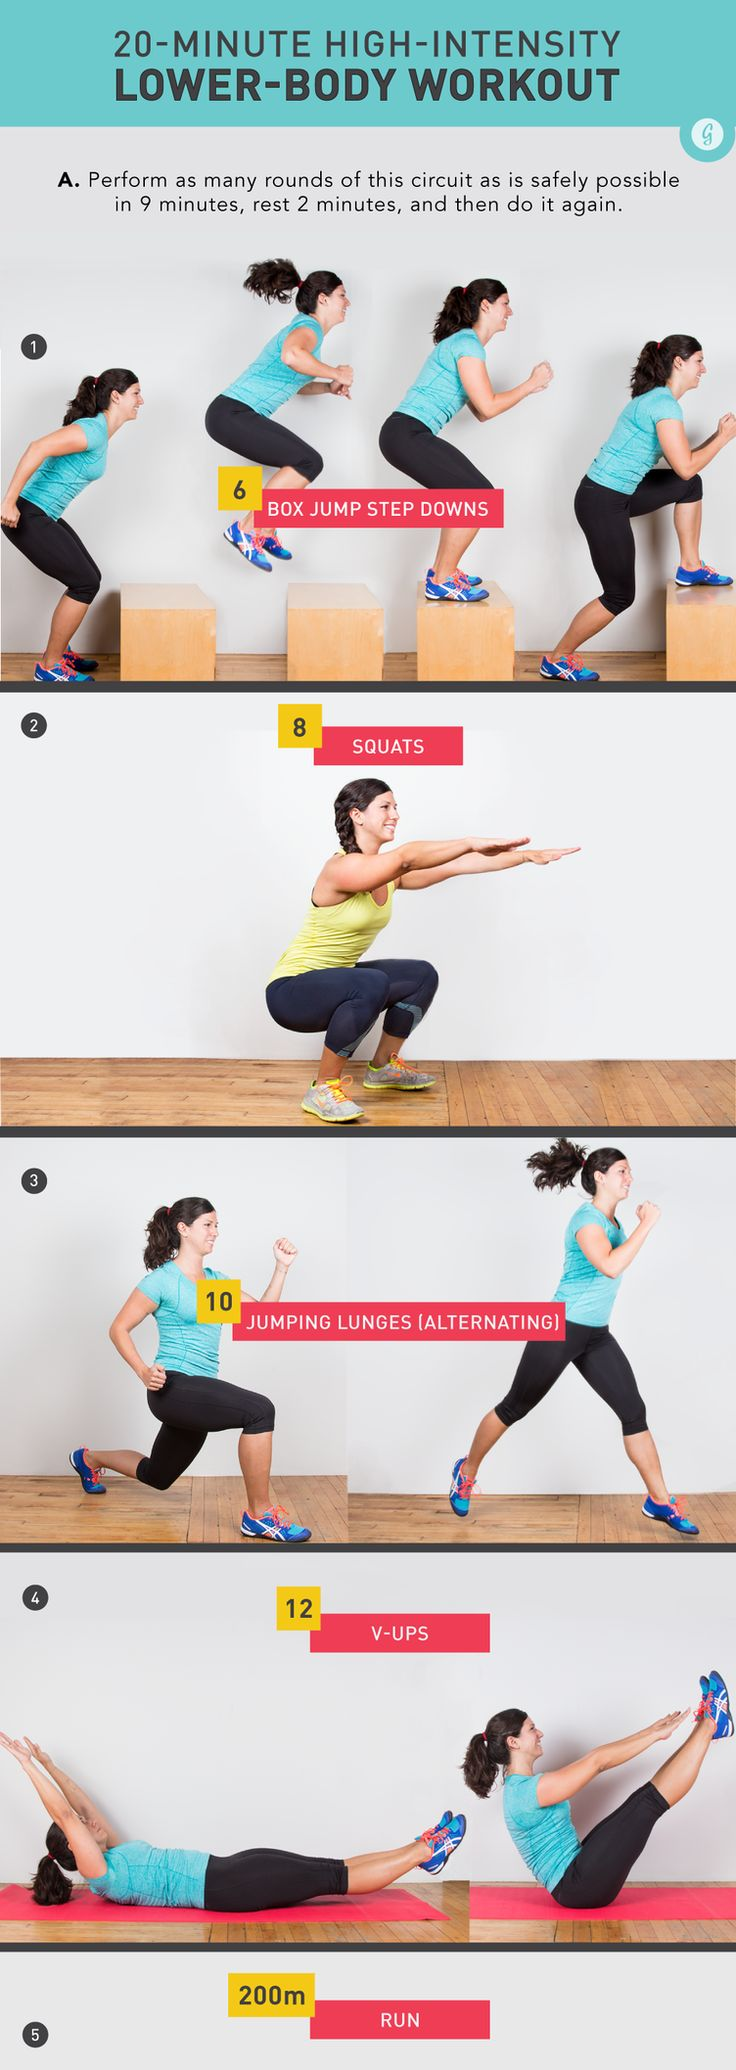 Lower Body Workout by Jamie Hagiya http://greatist.com/move/stay-fit-positive-while-injured